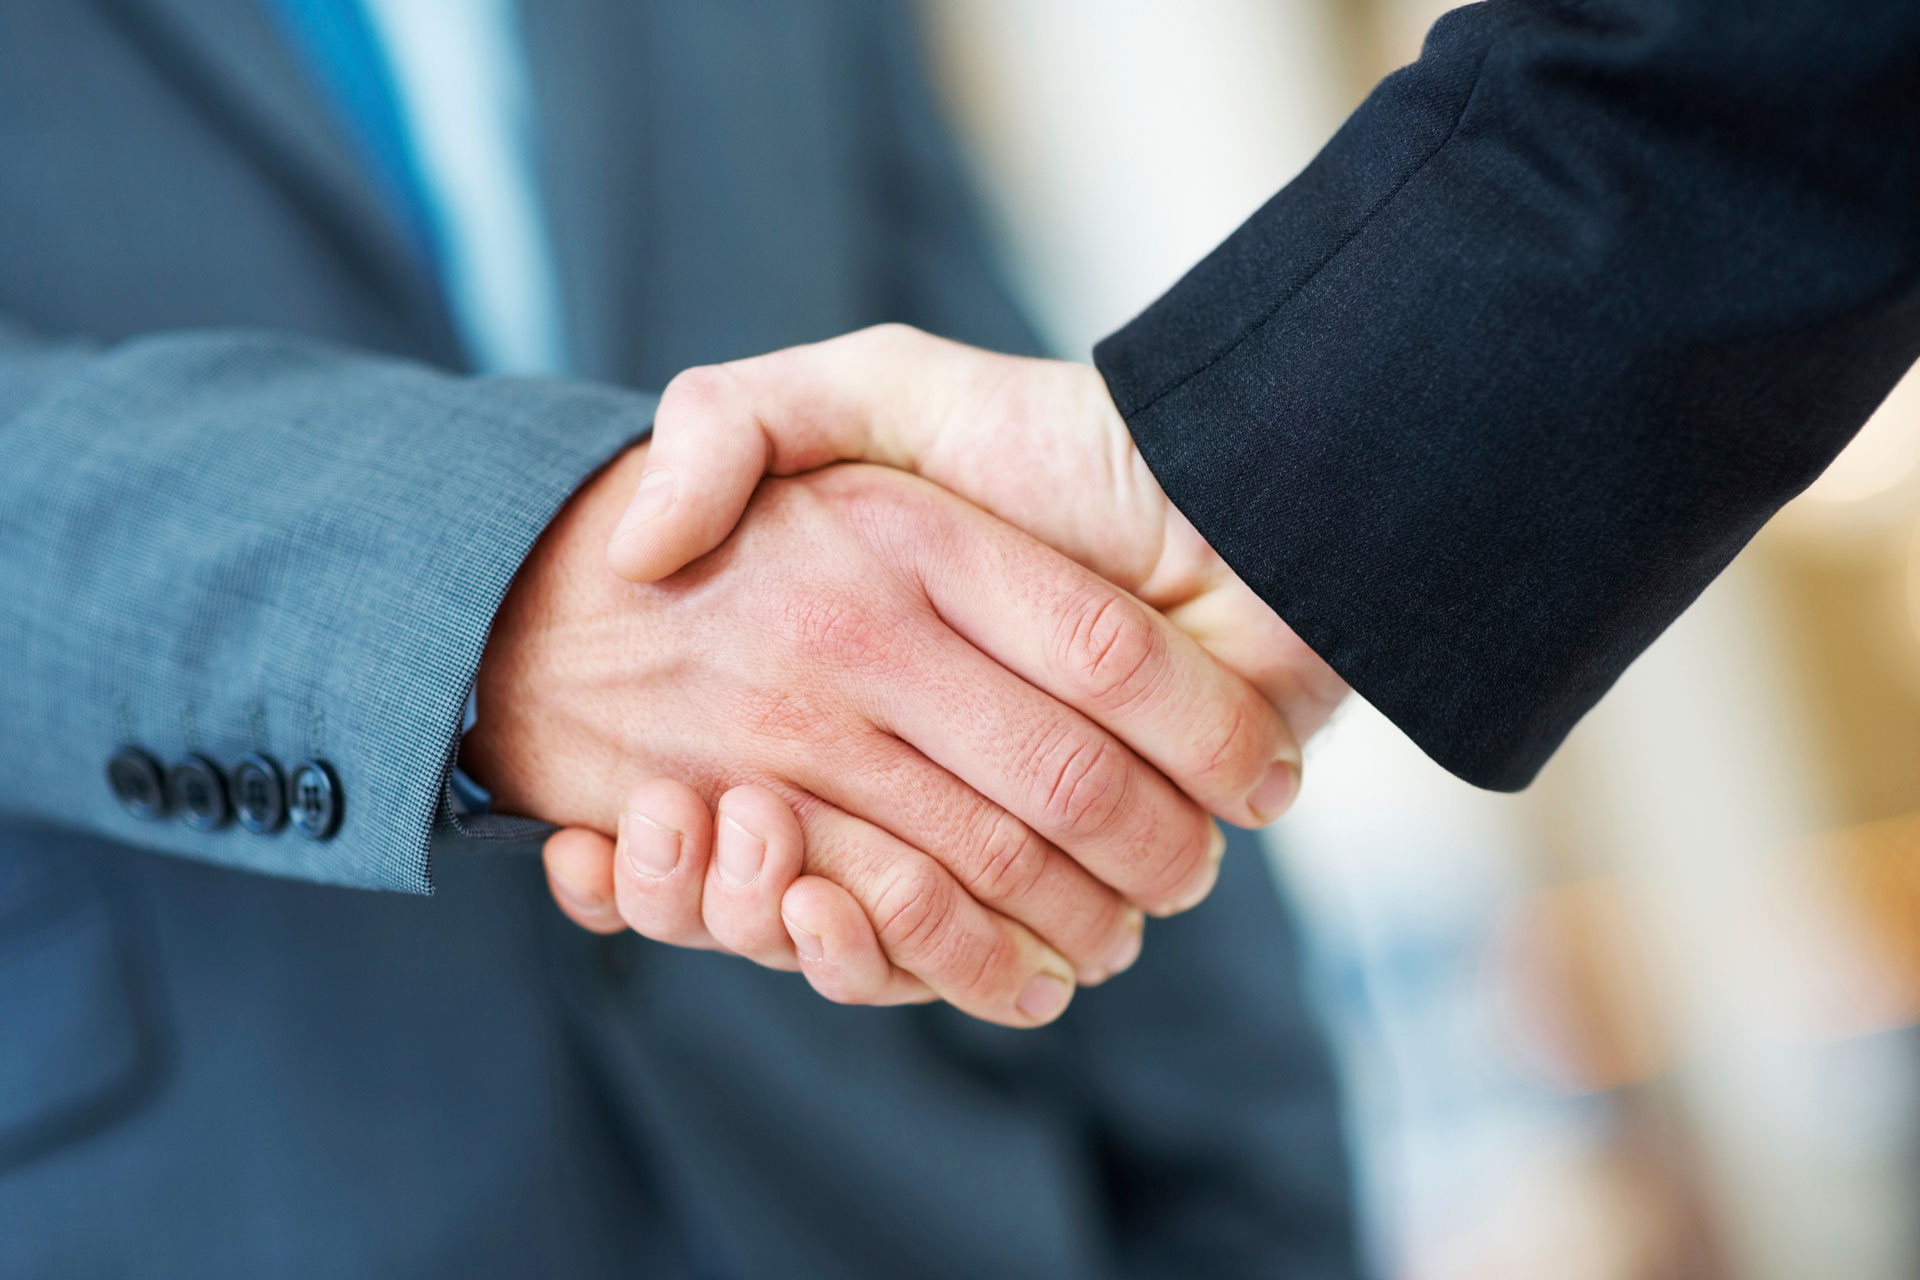 Handshake Deal in Business